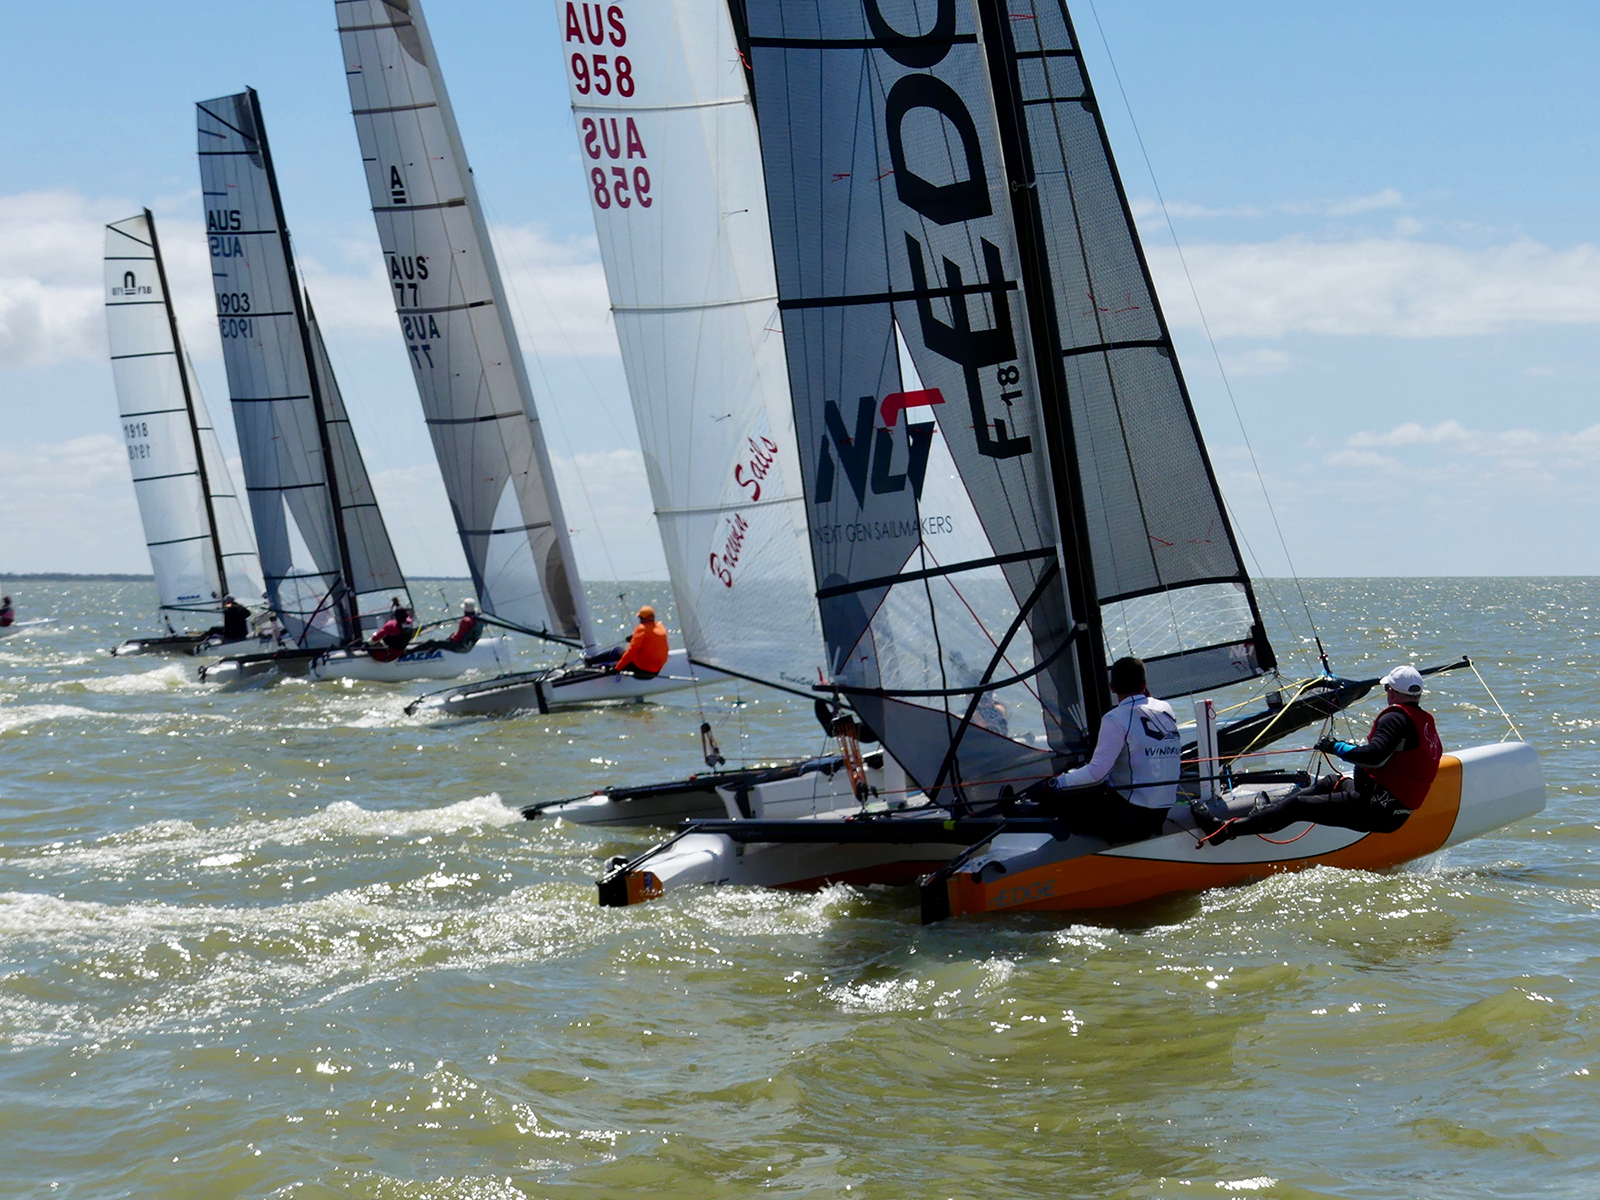 F18 cats have become regulars in the Milang Goolwa Classic - Down Under Sail pic